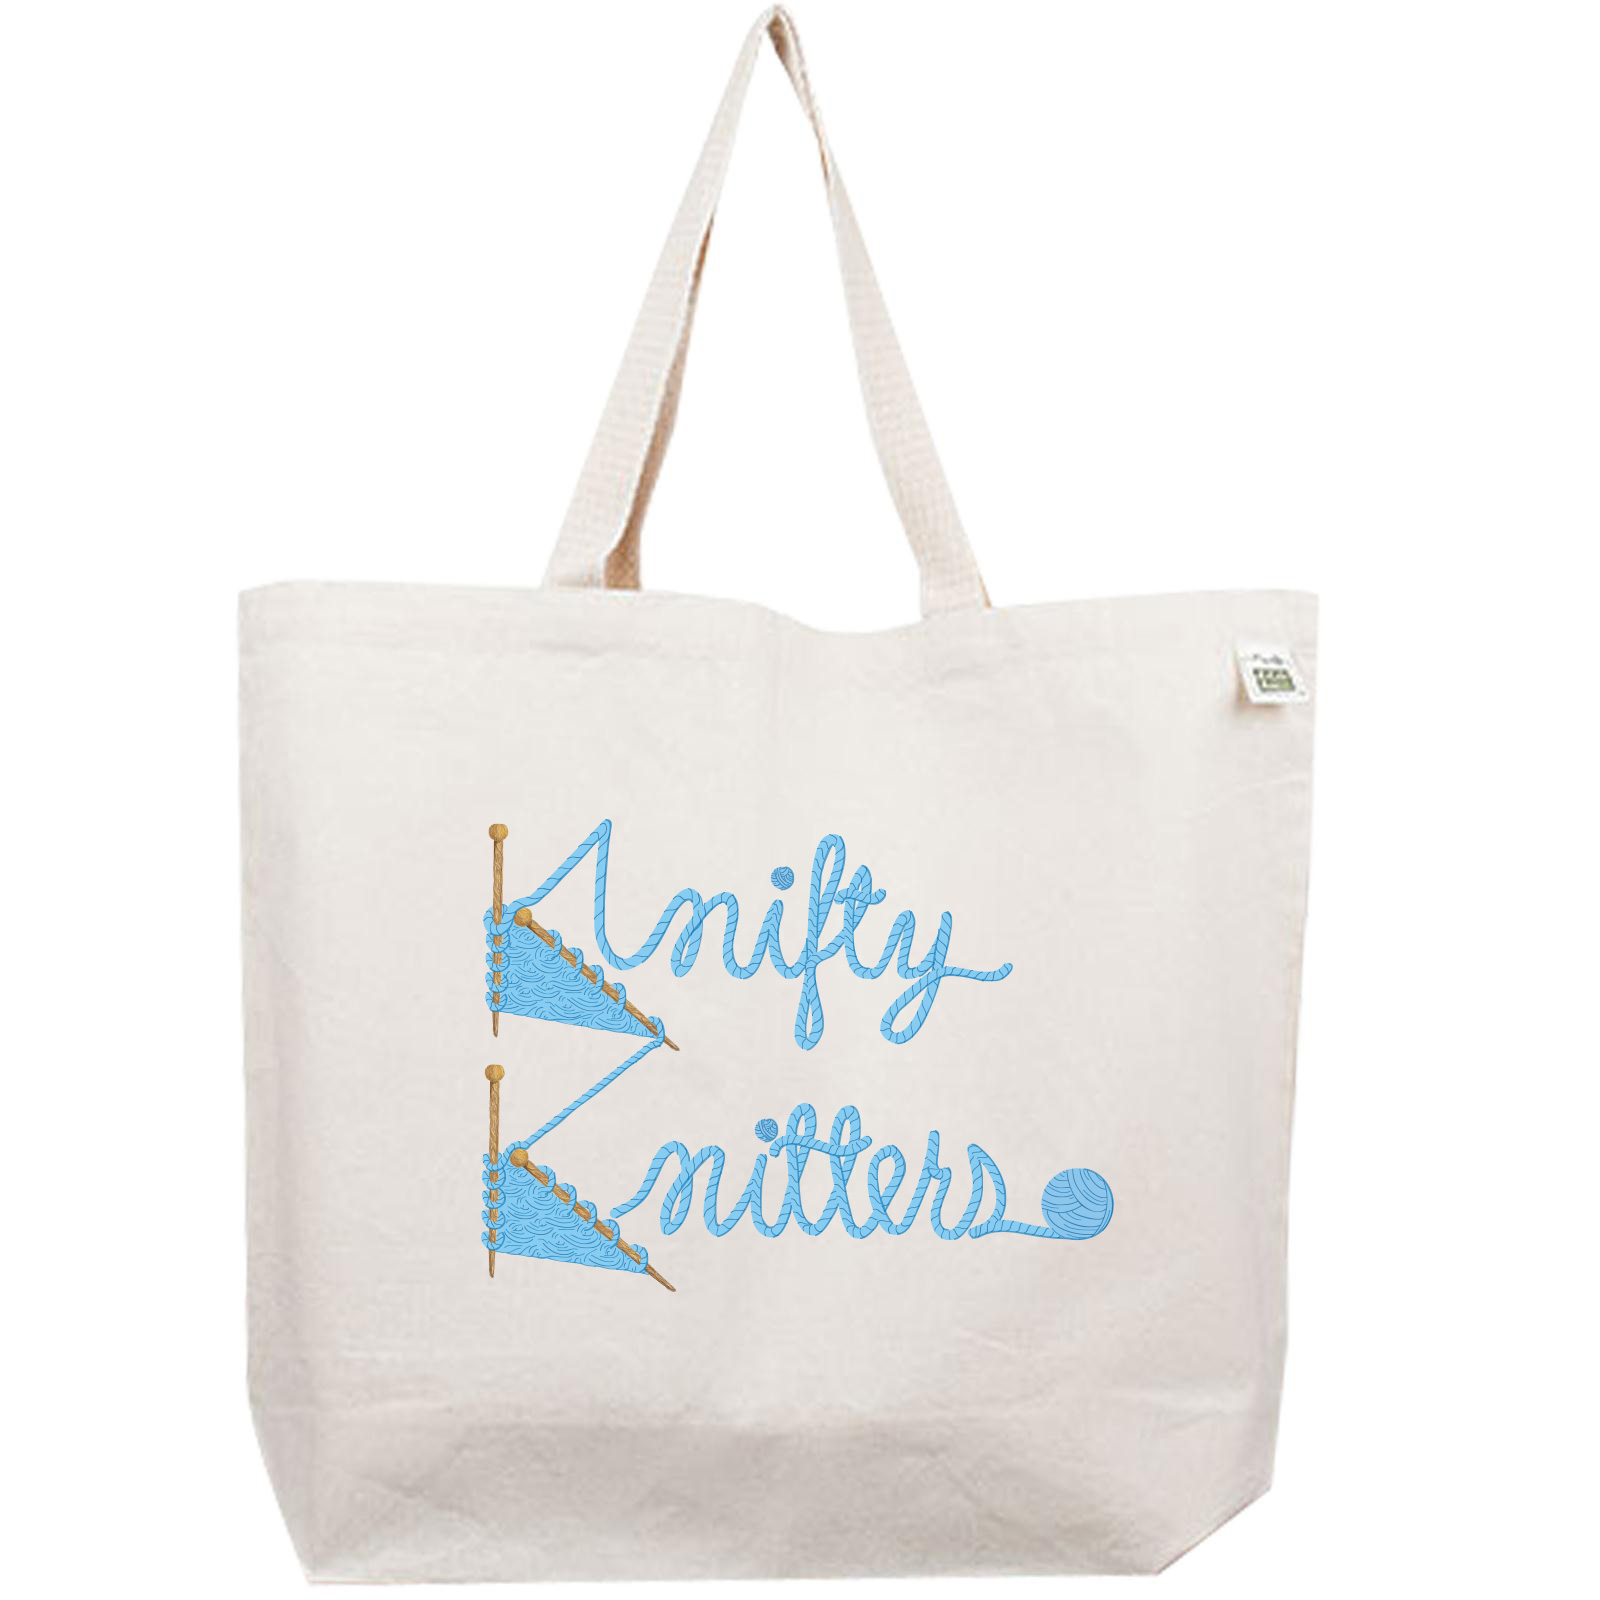 Knifty Knitters Tote